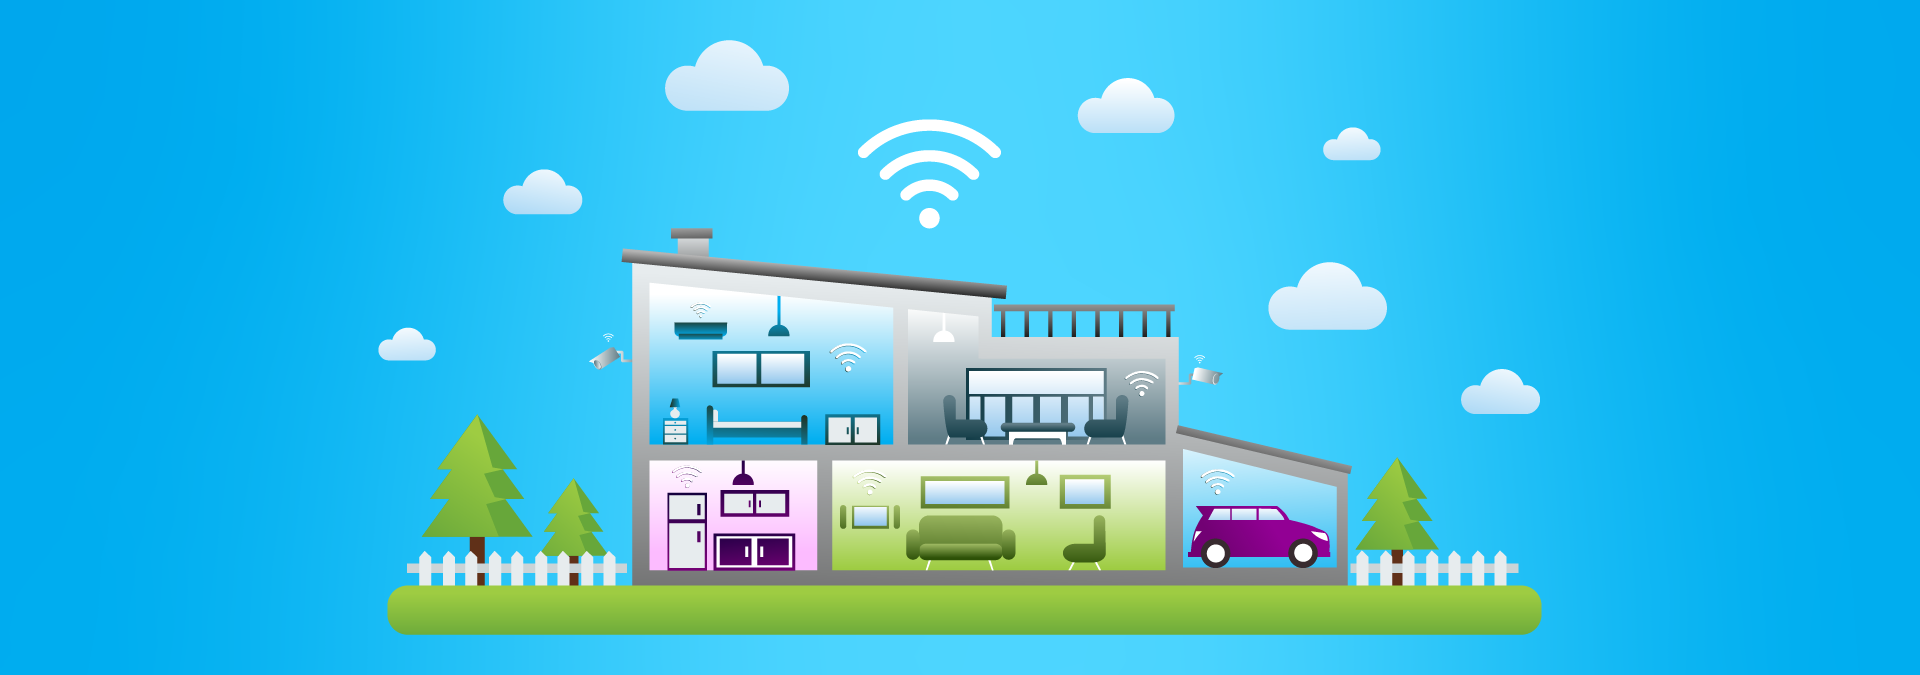 Protecting Your House with IoT Devices